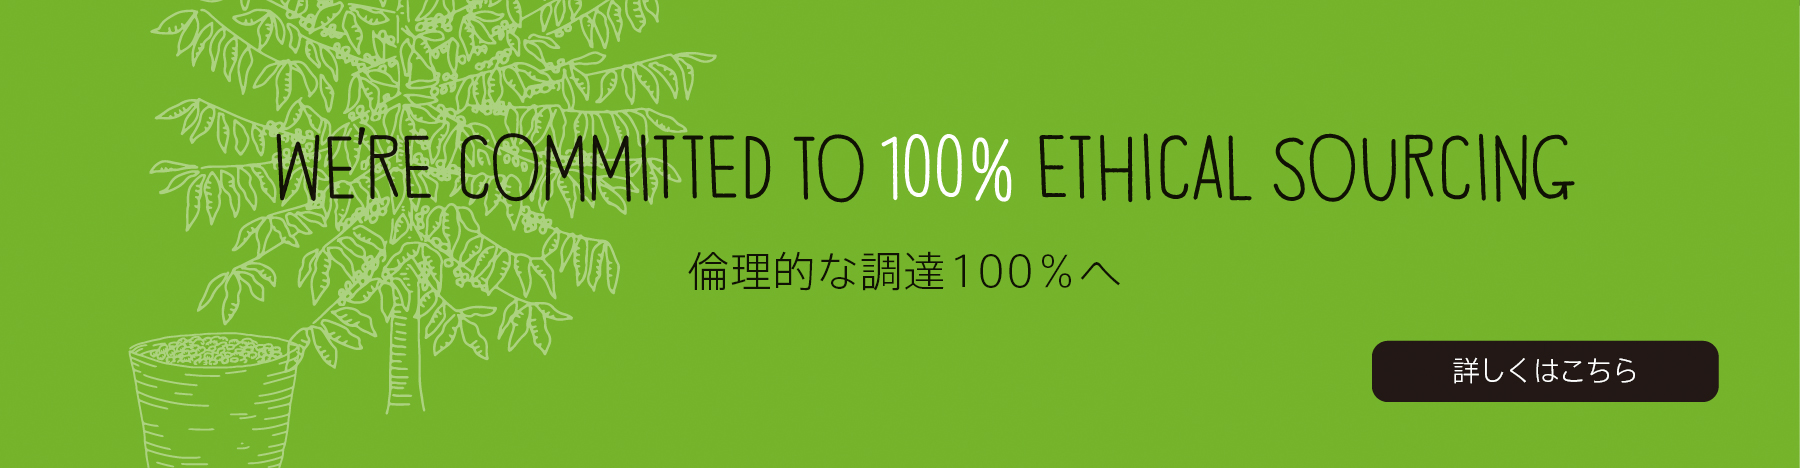 WE'RE COMMITTED TO 100% ETHICAL SOURCING 倫理的な調達100%へ  詳しくはこちら